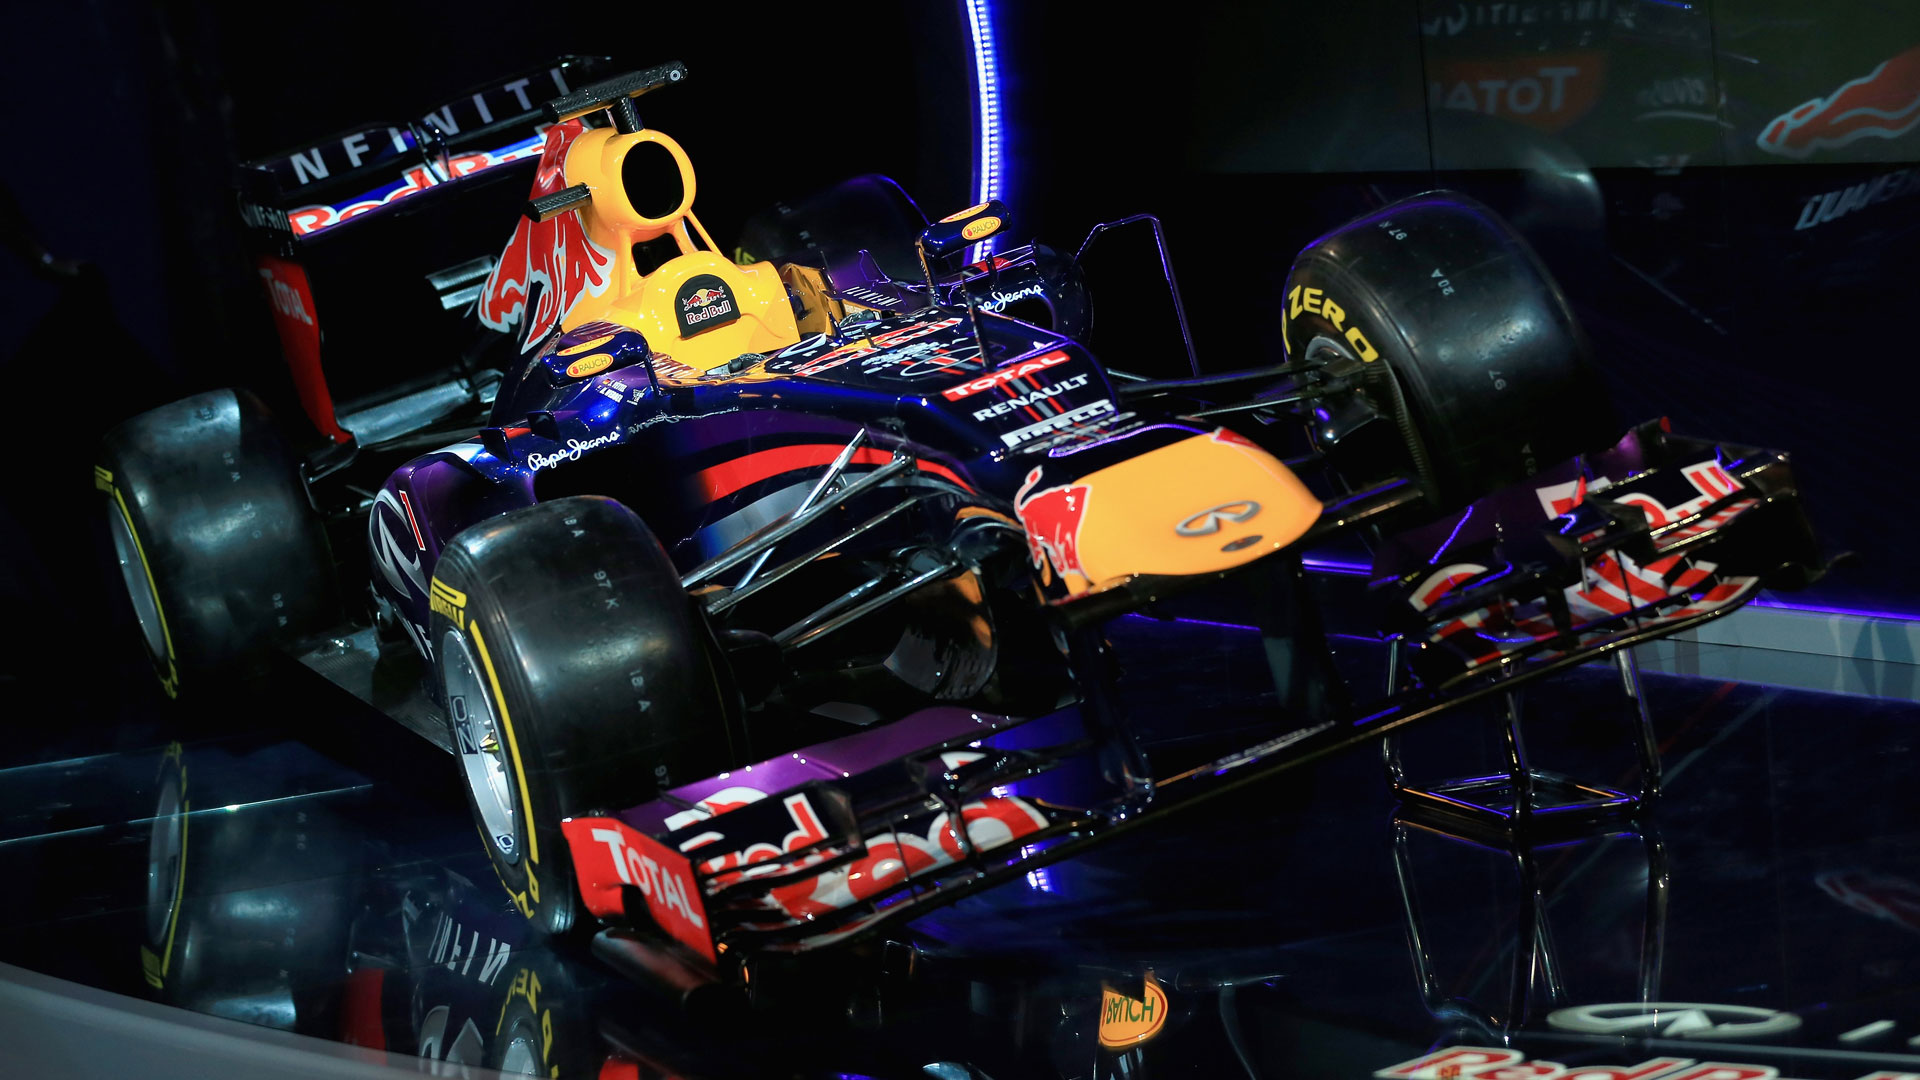 hd pictures 2013 launch red bull rb9 f1 car | f1-fansite